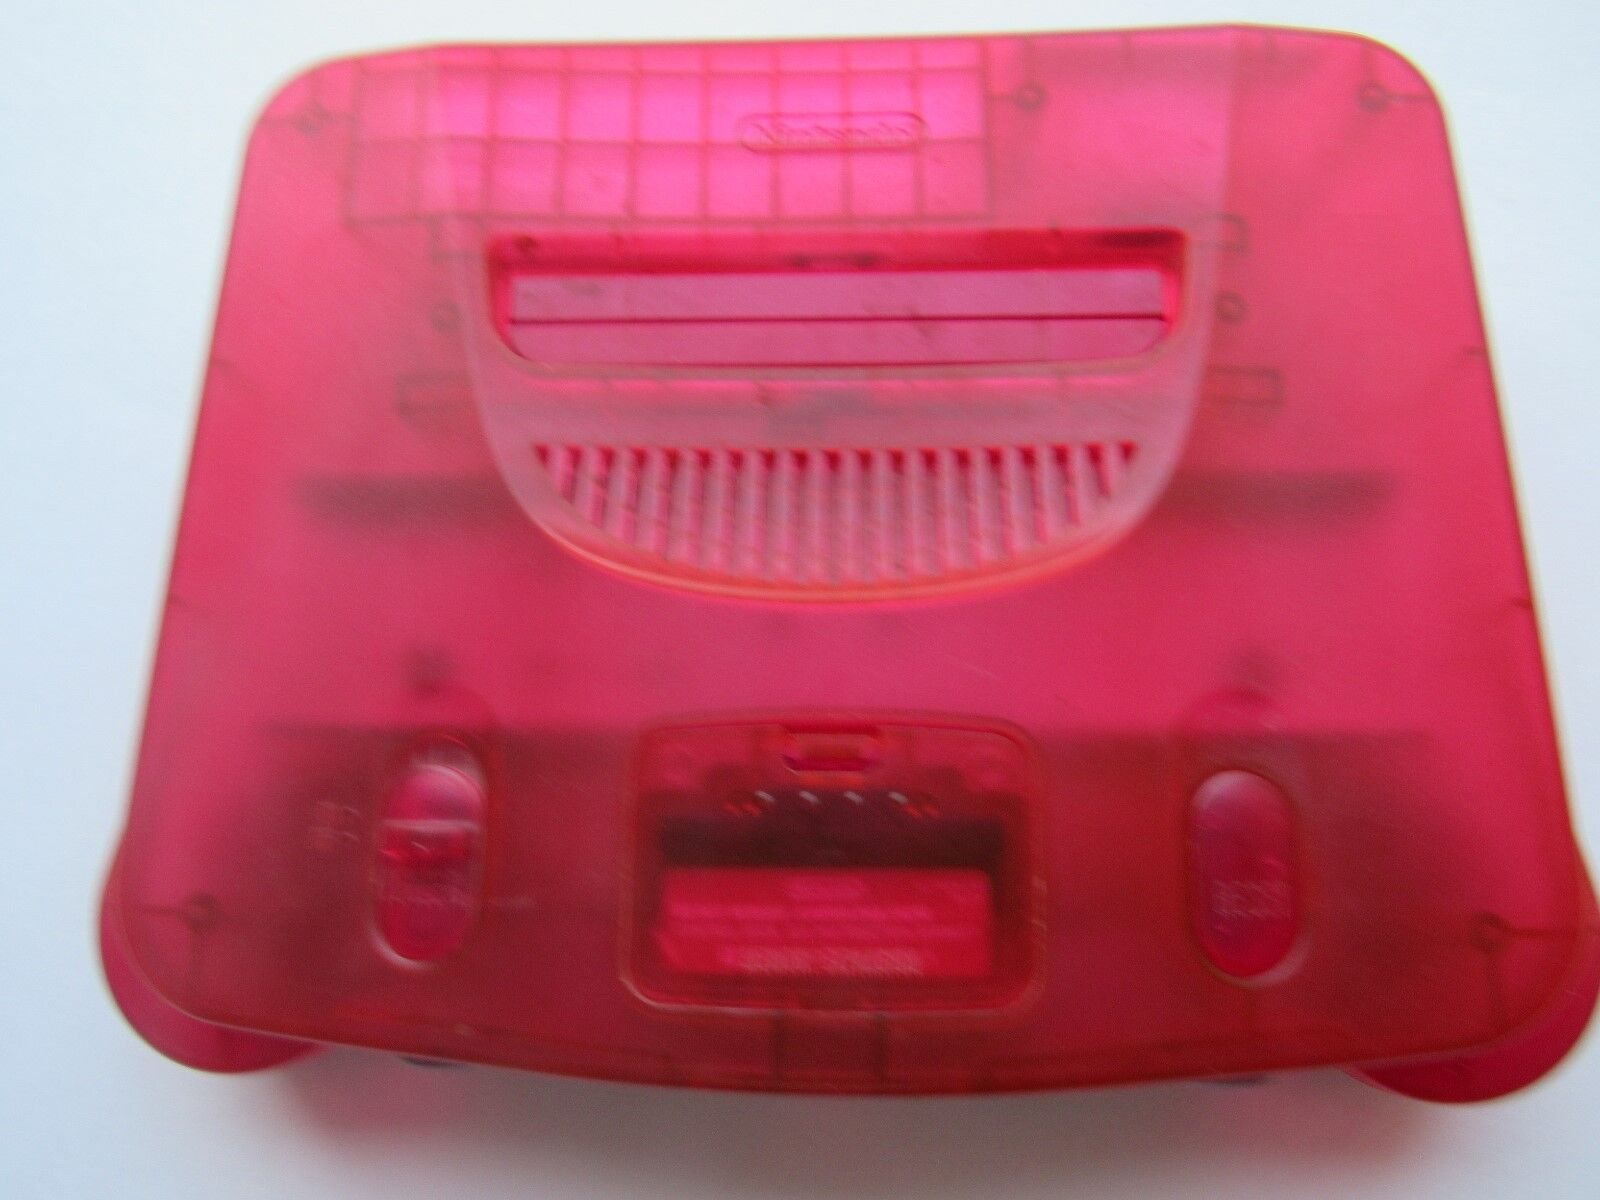 *GOOD* Nintendo 64 N64 Video Game Console Selection Funtastic Pokemon Gold PICK! Watermelon Red (Pink) *Console & Jumper Pack*